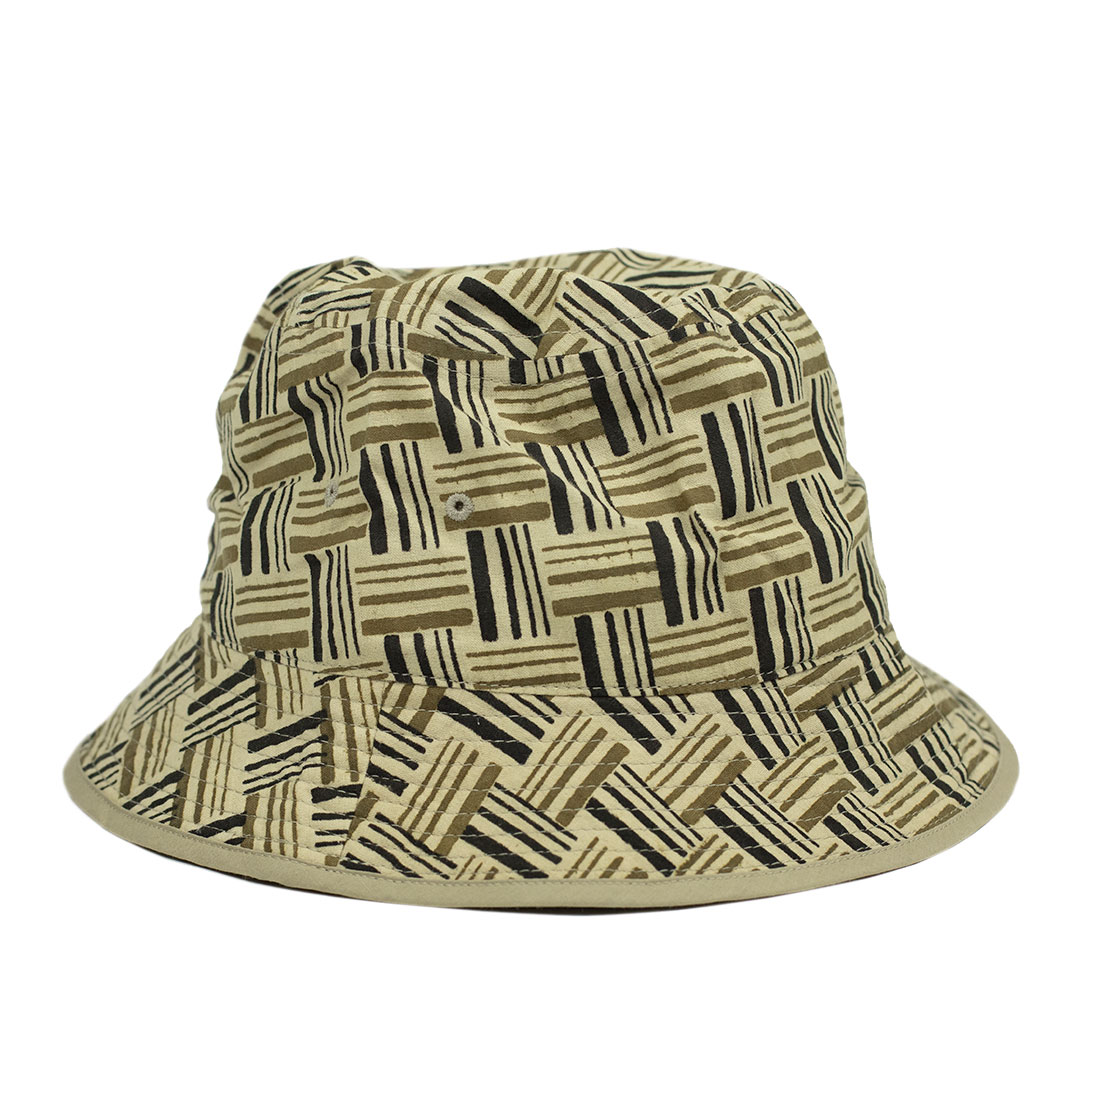 Sublime Hats Spring Summer 2021 SS21 Made in Japan packable printed bucket hat (12).jpg